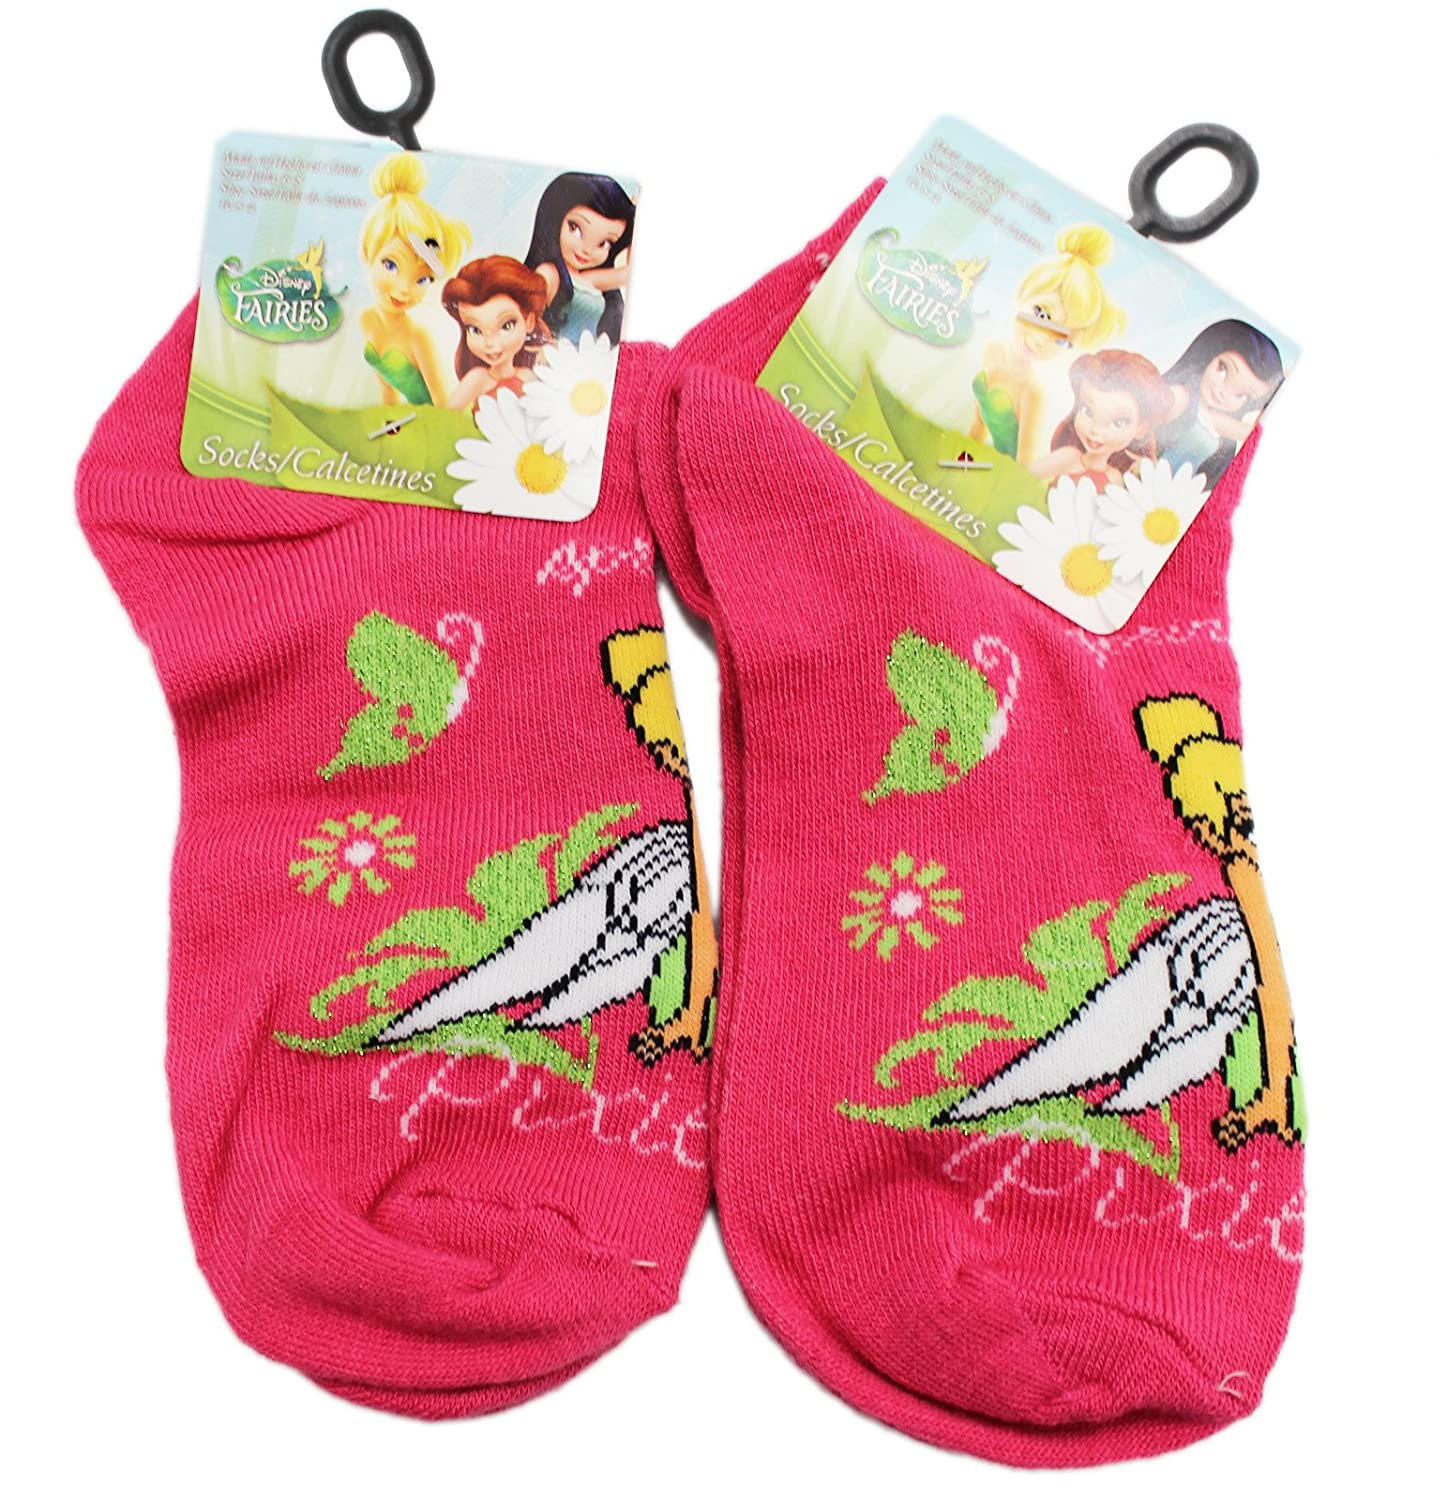 Disneys Tinker Bell Hot Pink Colored Kids Socks 2 Pairs, Size 6-8